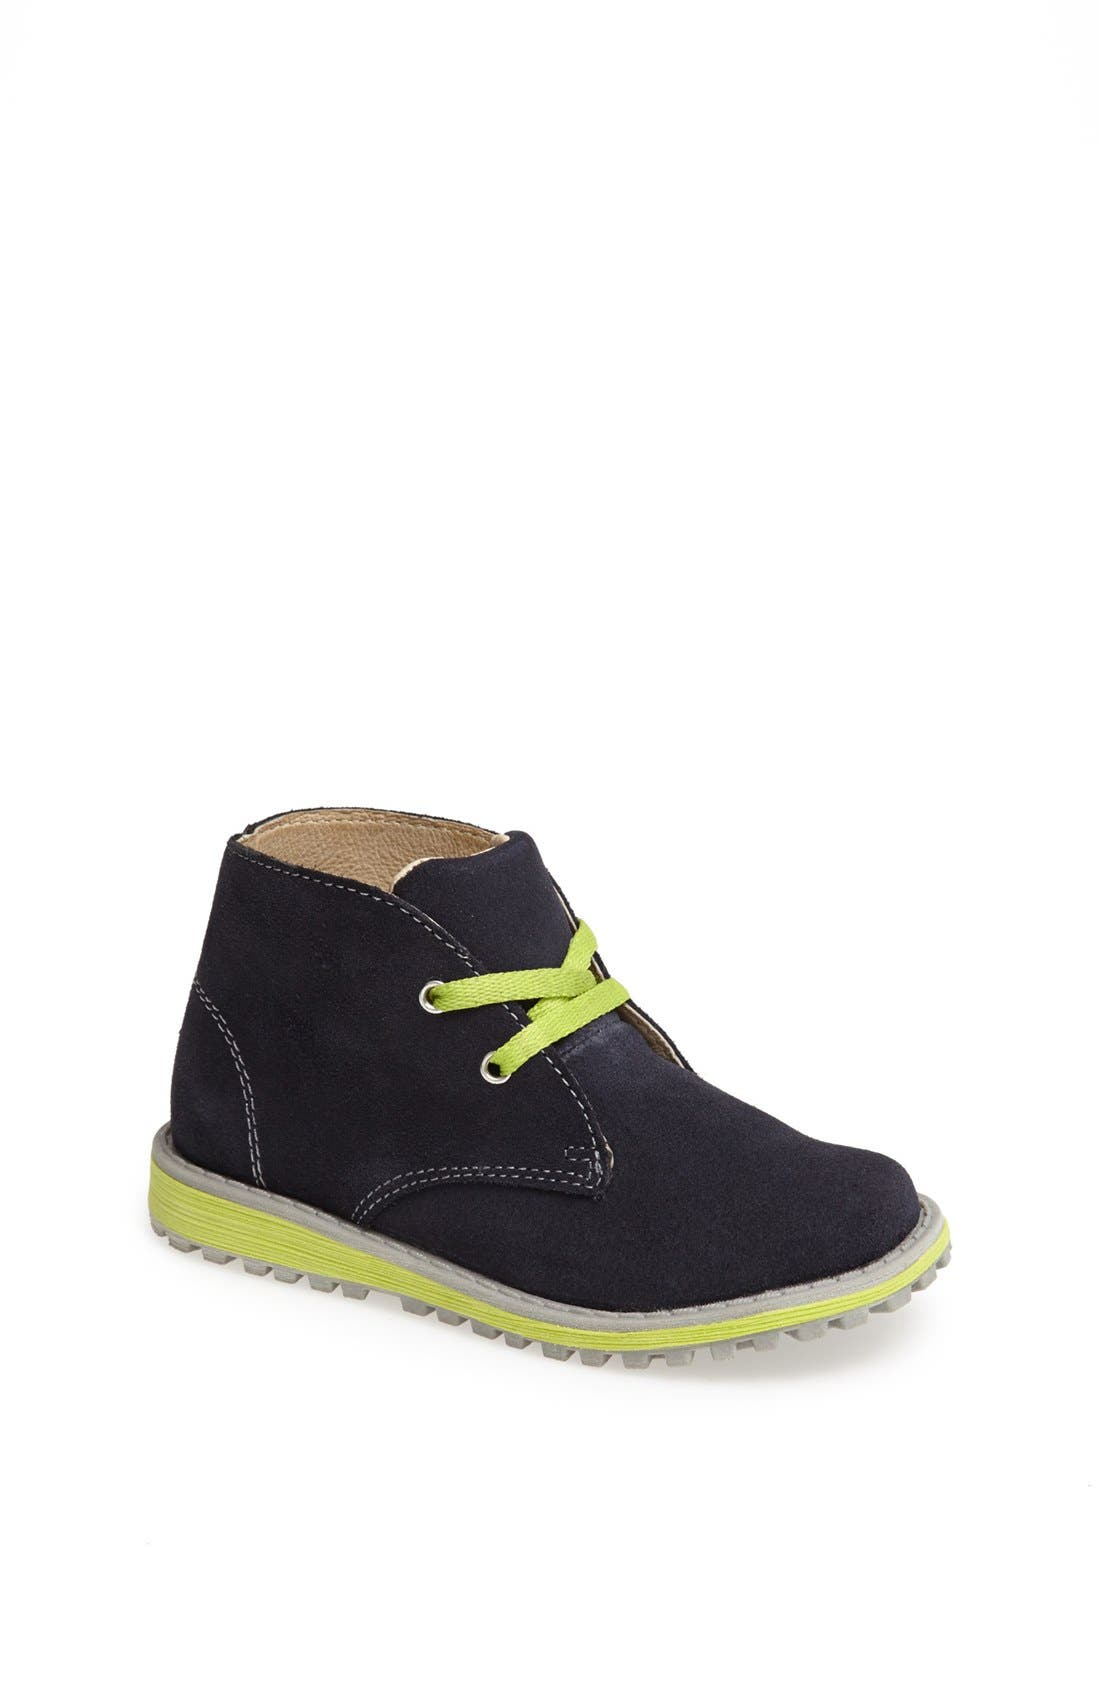 Alternate Image 1 Selected - Umi 'Hector' Boot (Toddler & Little Kid)